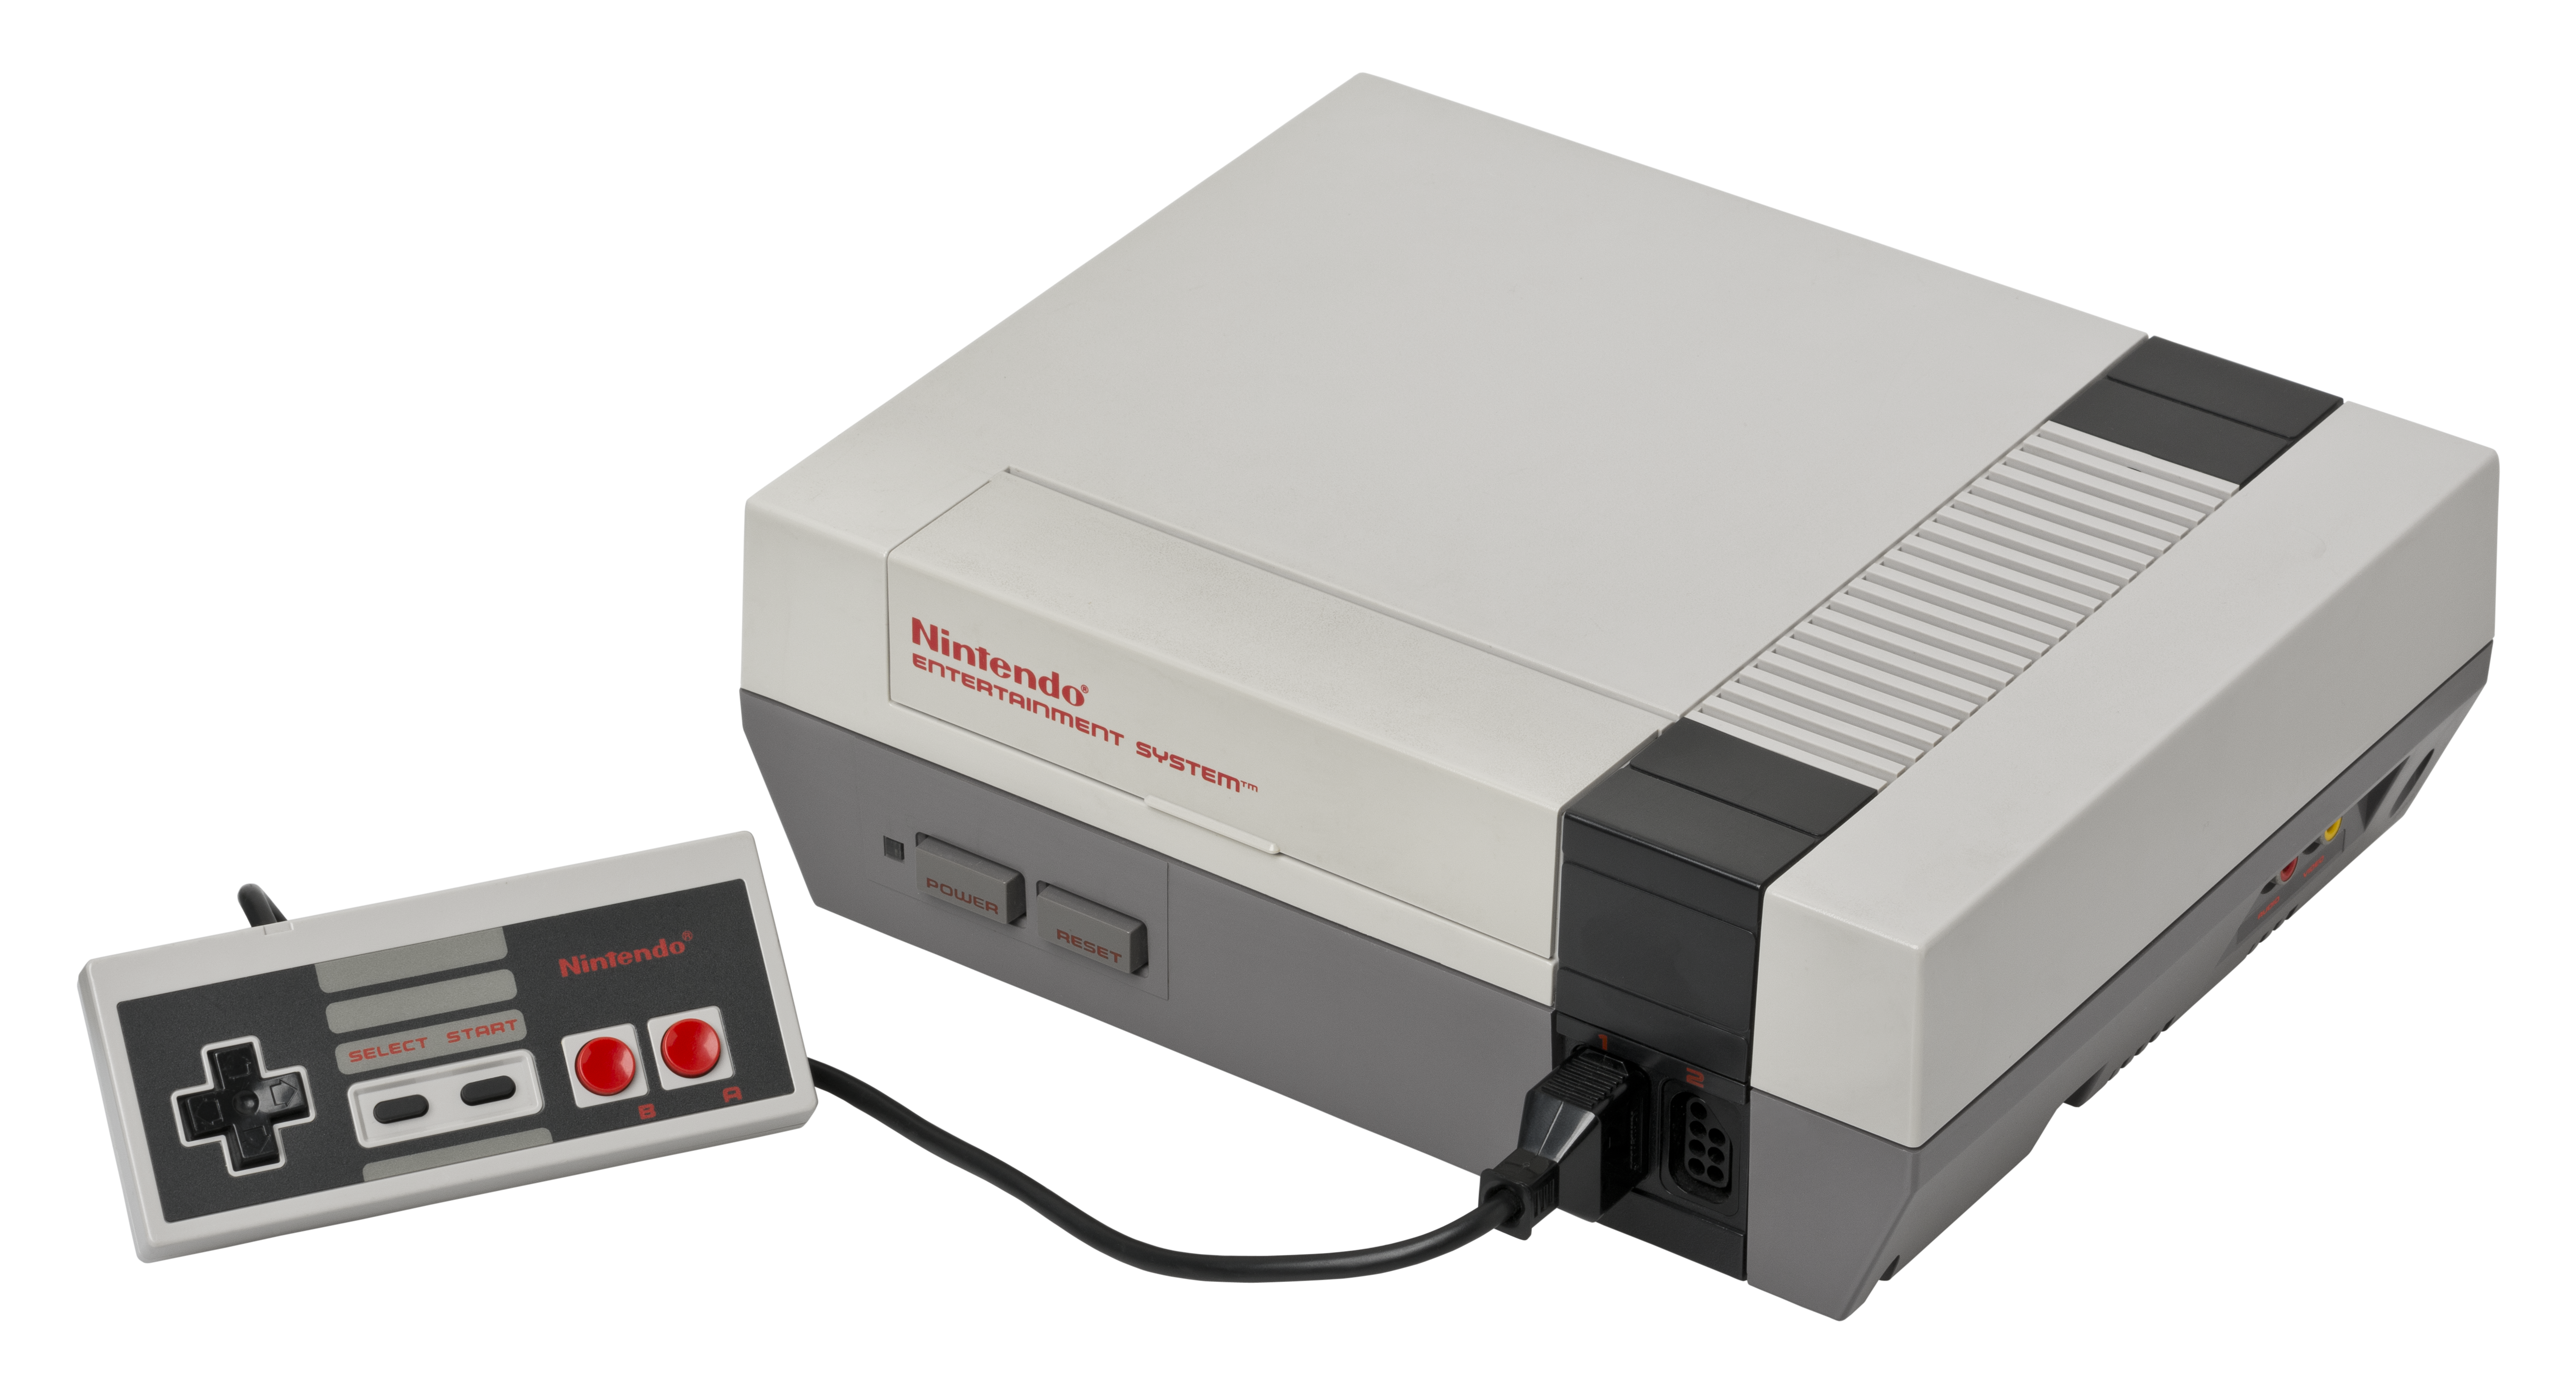 NES, hobbies, gaming